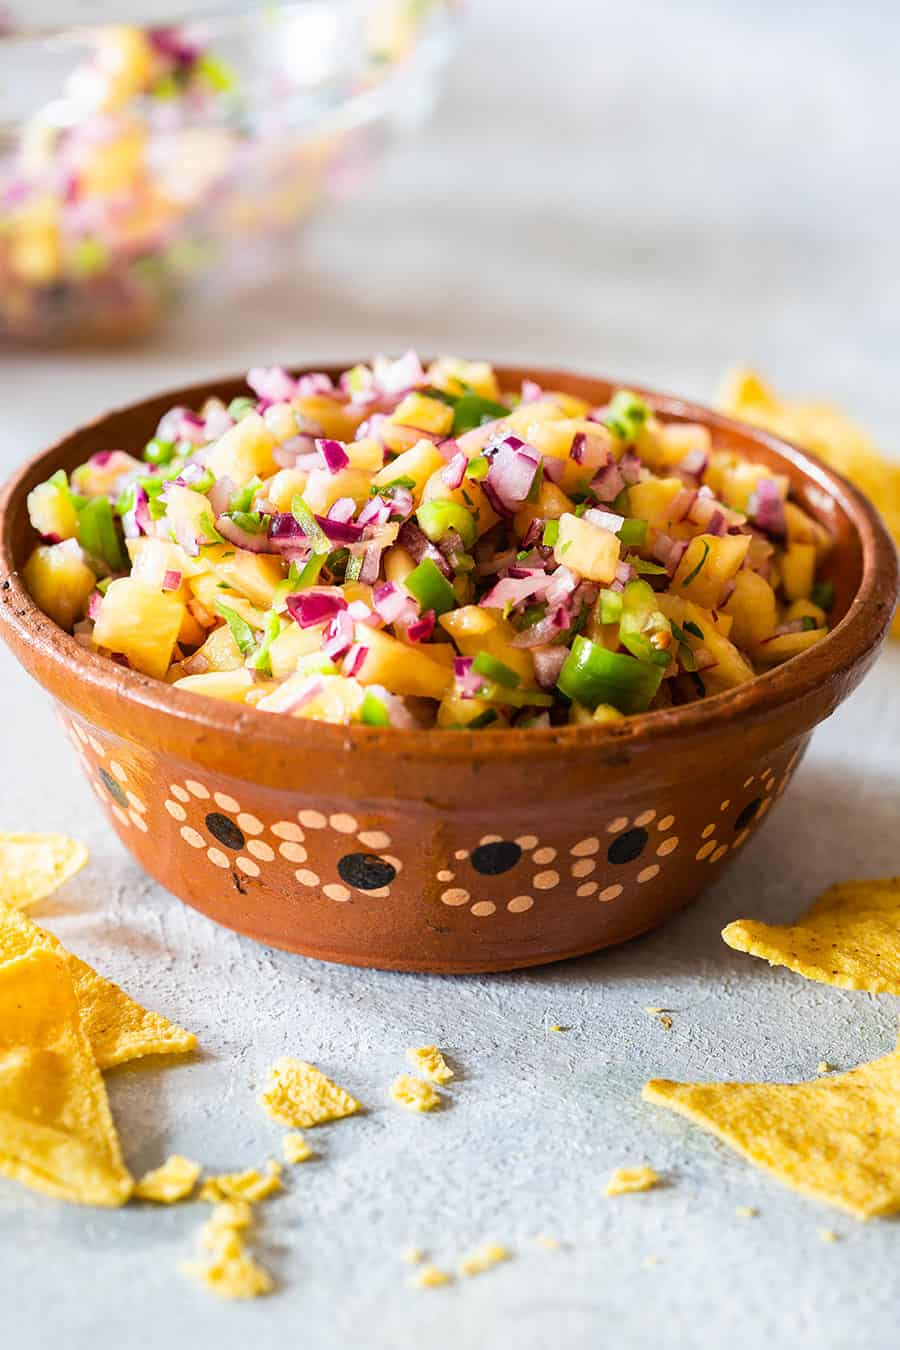 Pineapple salsa with jalapeno served on a Mexican clay bowl.